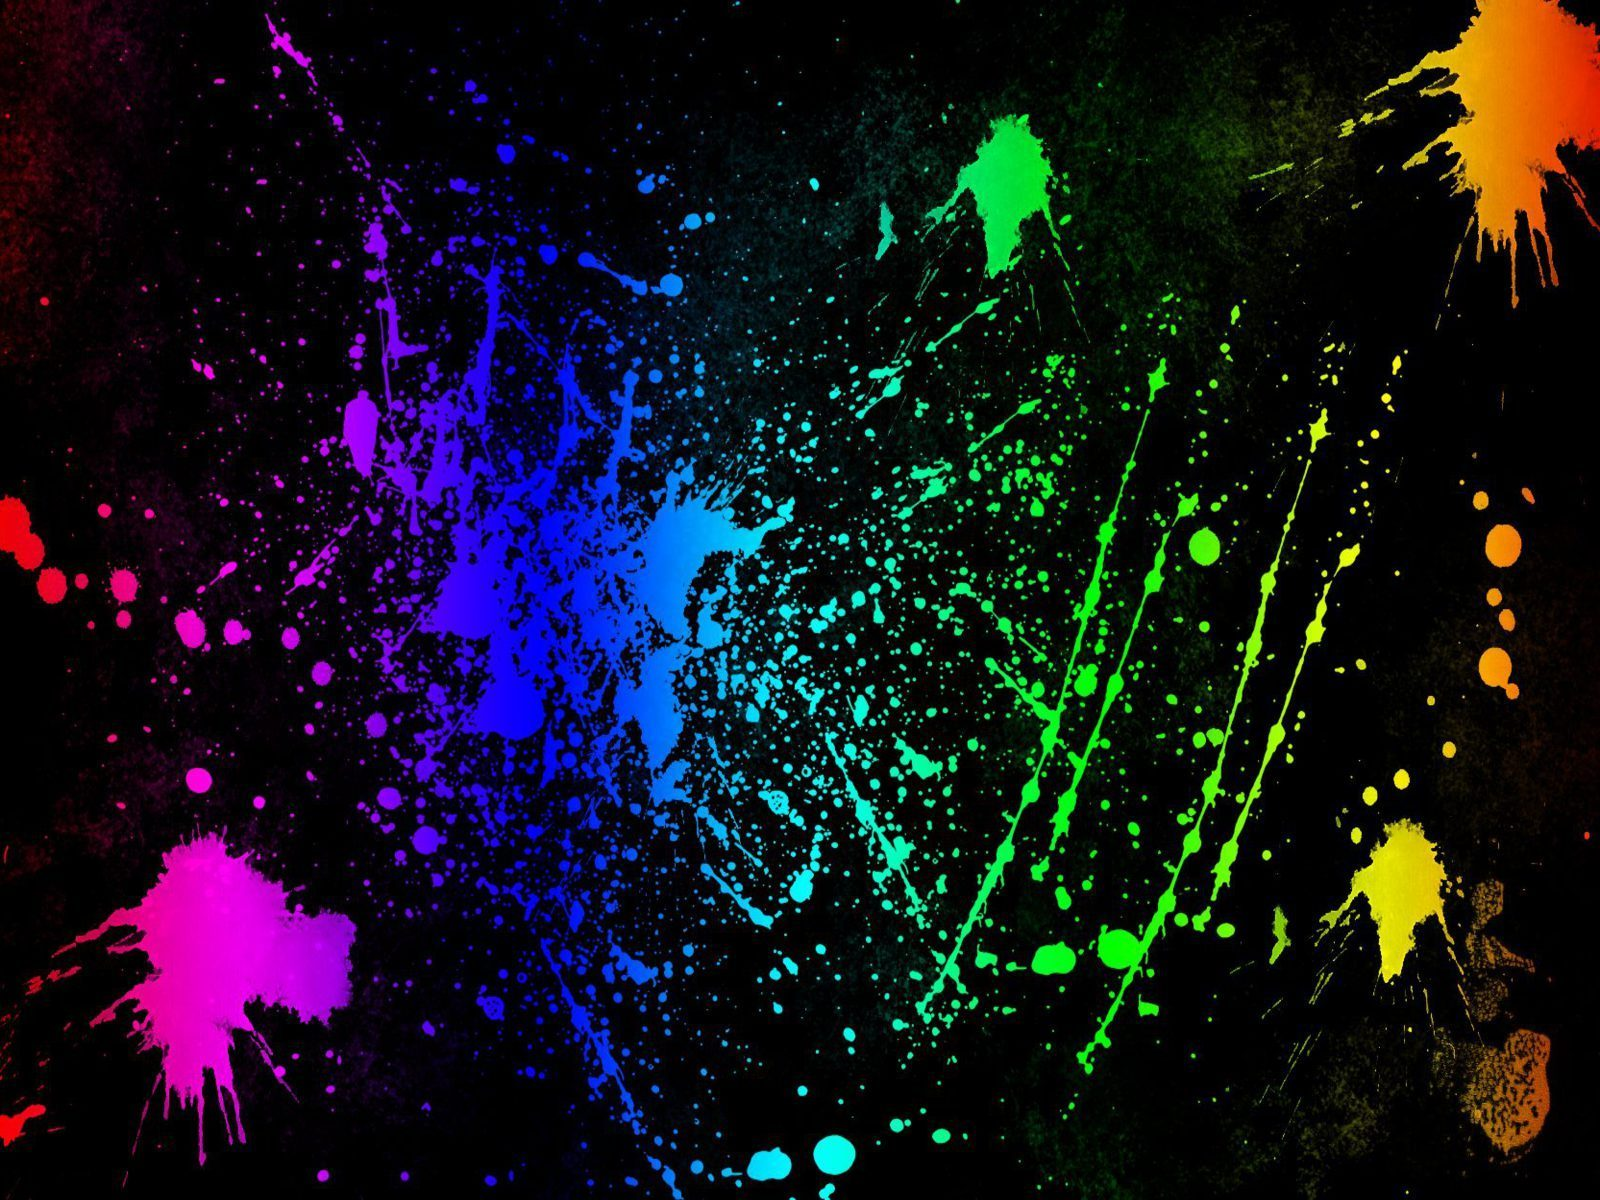 Splatter   Neon Colors Rock Wallpaper 18995953 1600x1200